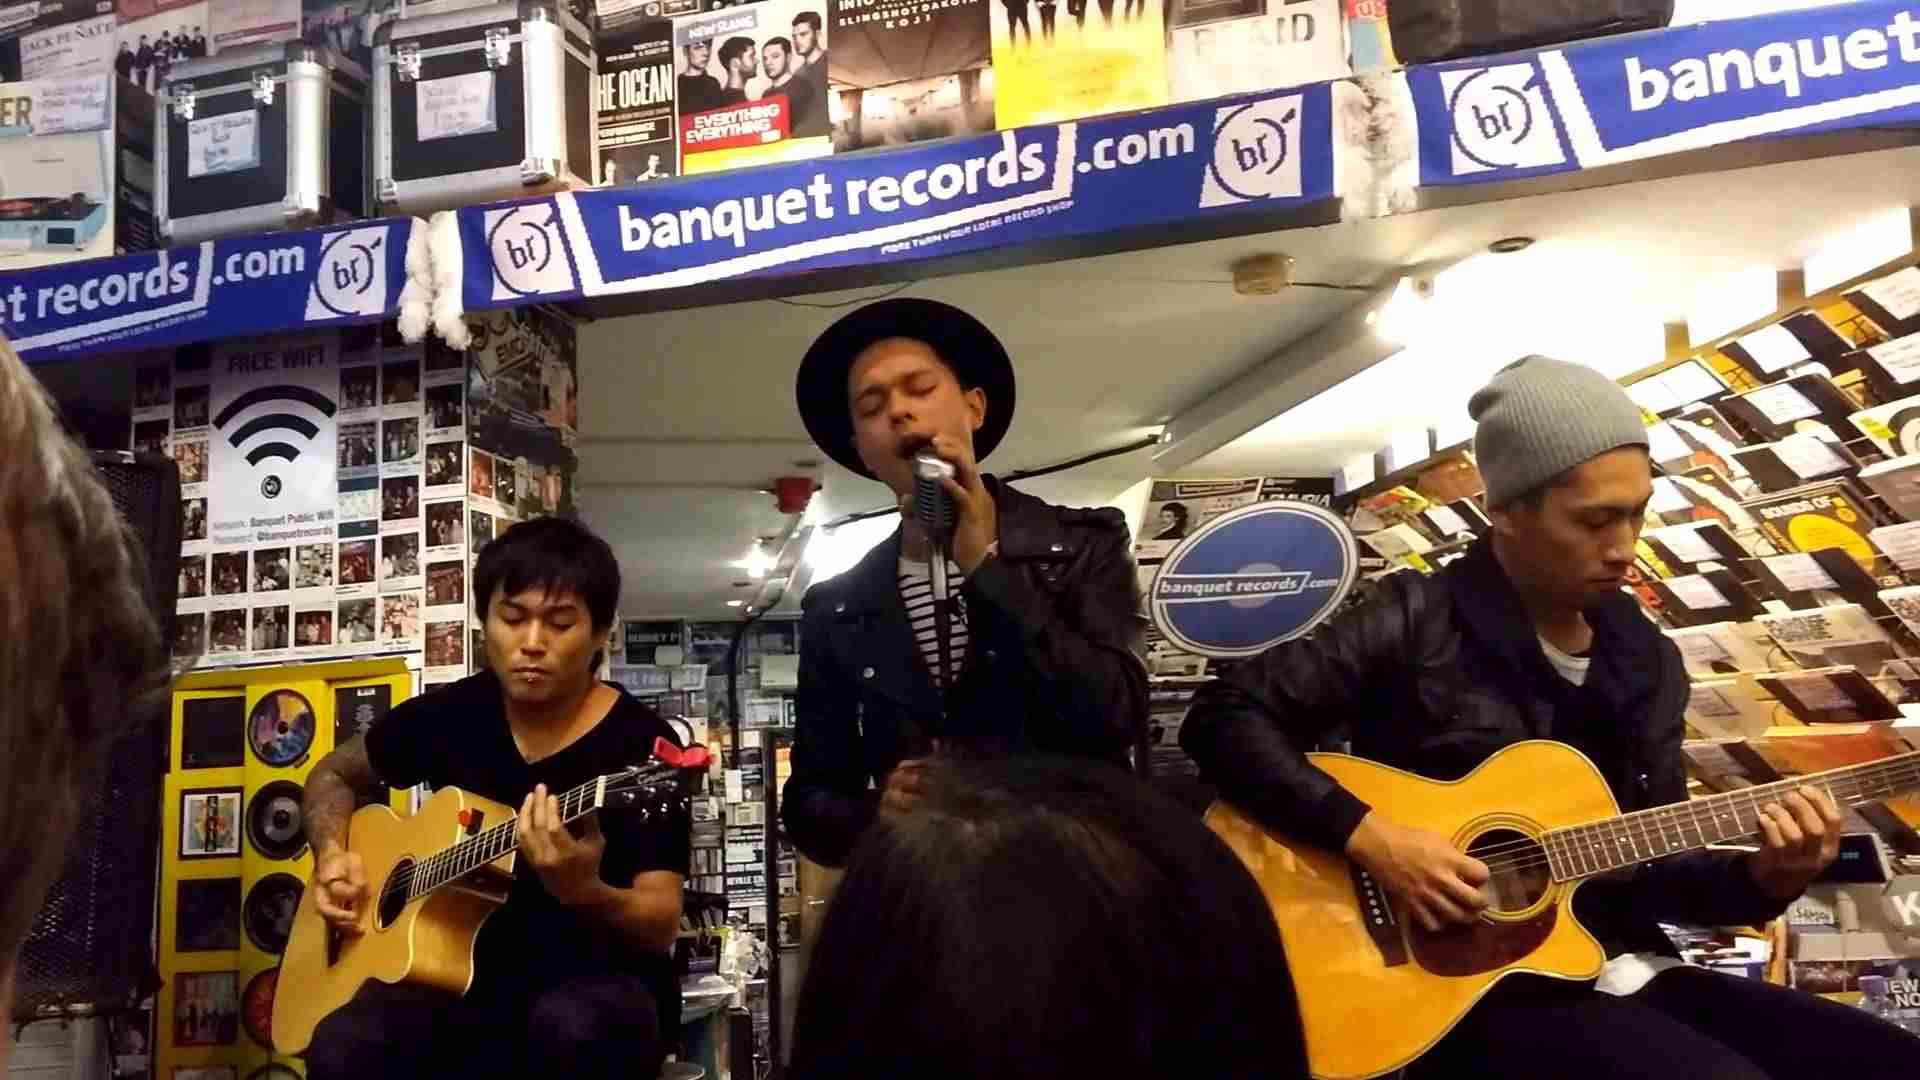 Coldrain's acoustic set in Banquet Records - YouTube